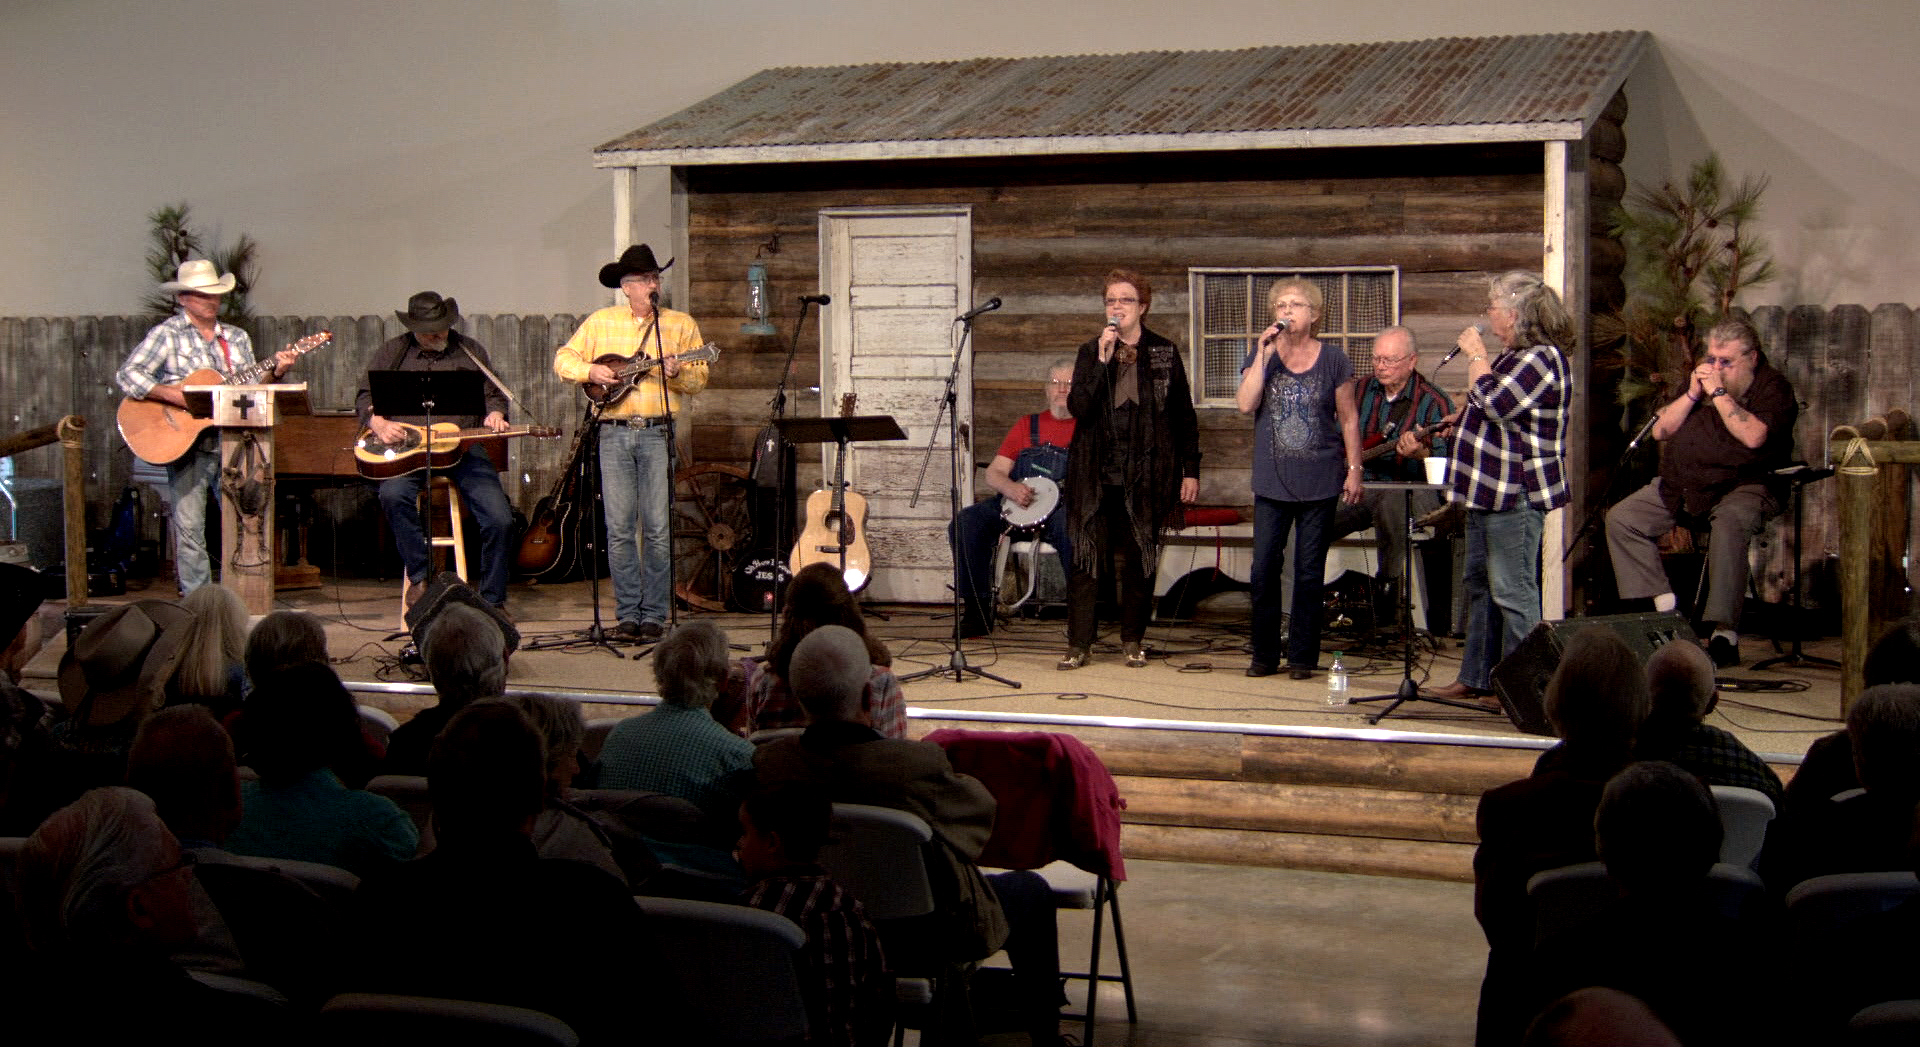 Kip Bradford leads out in this new cowboy church program seen on Better Life TV.